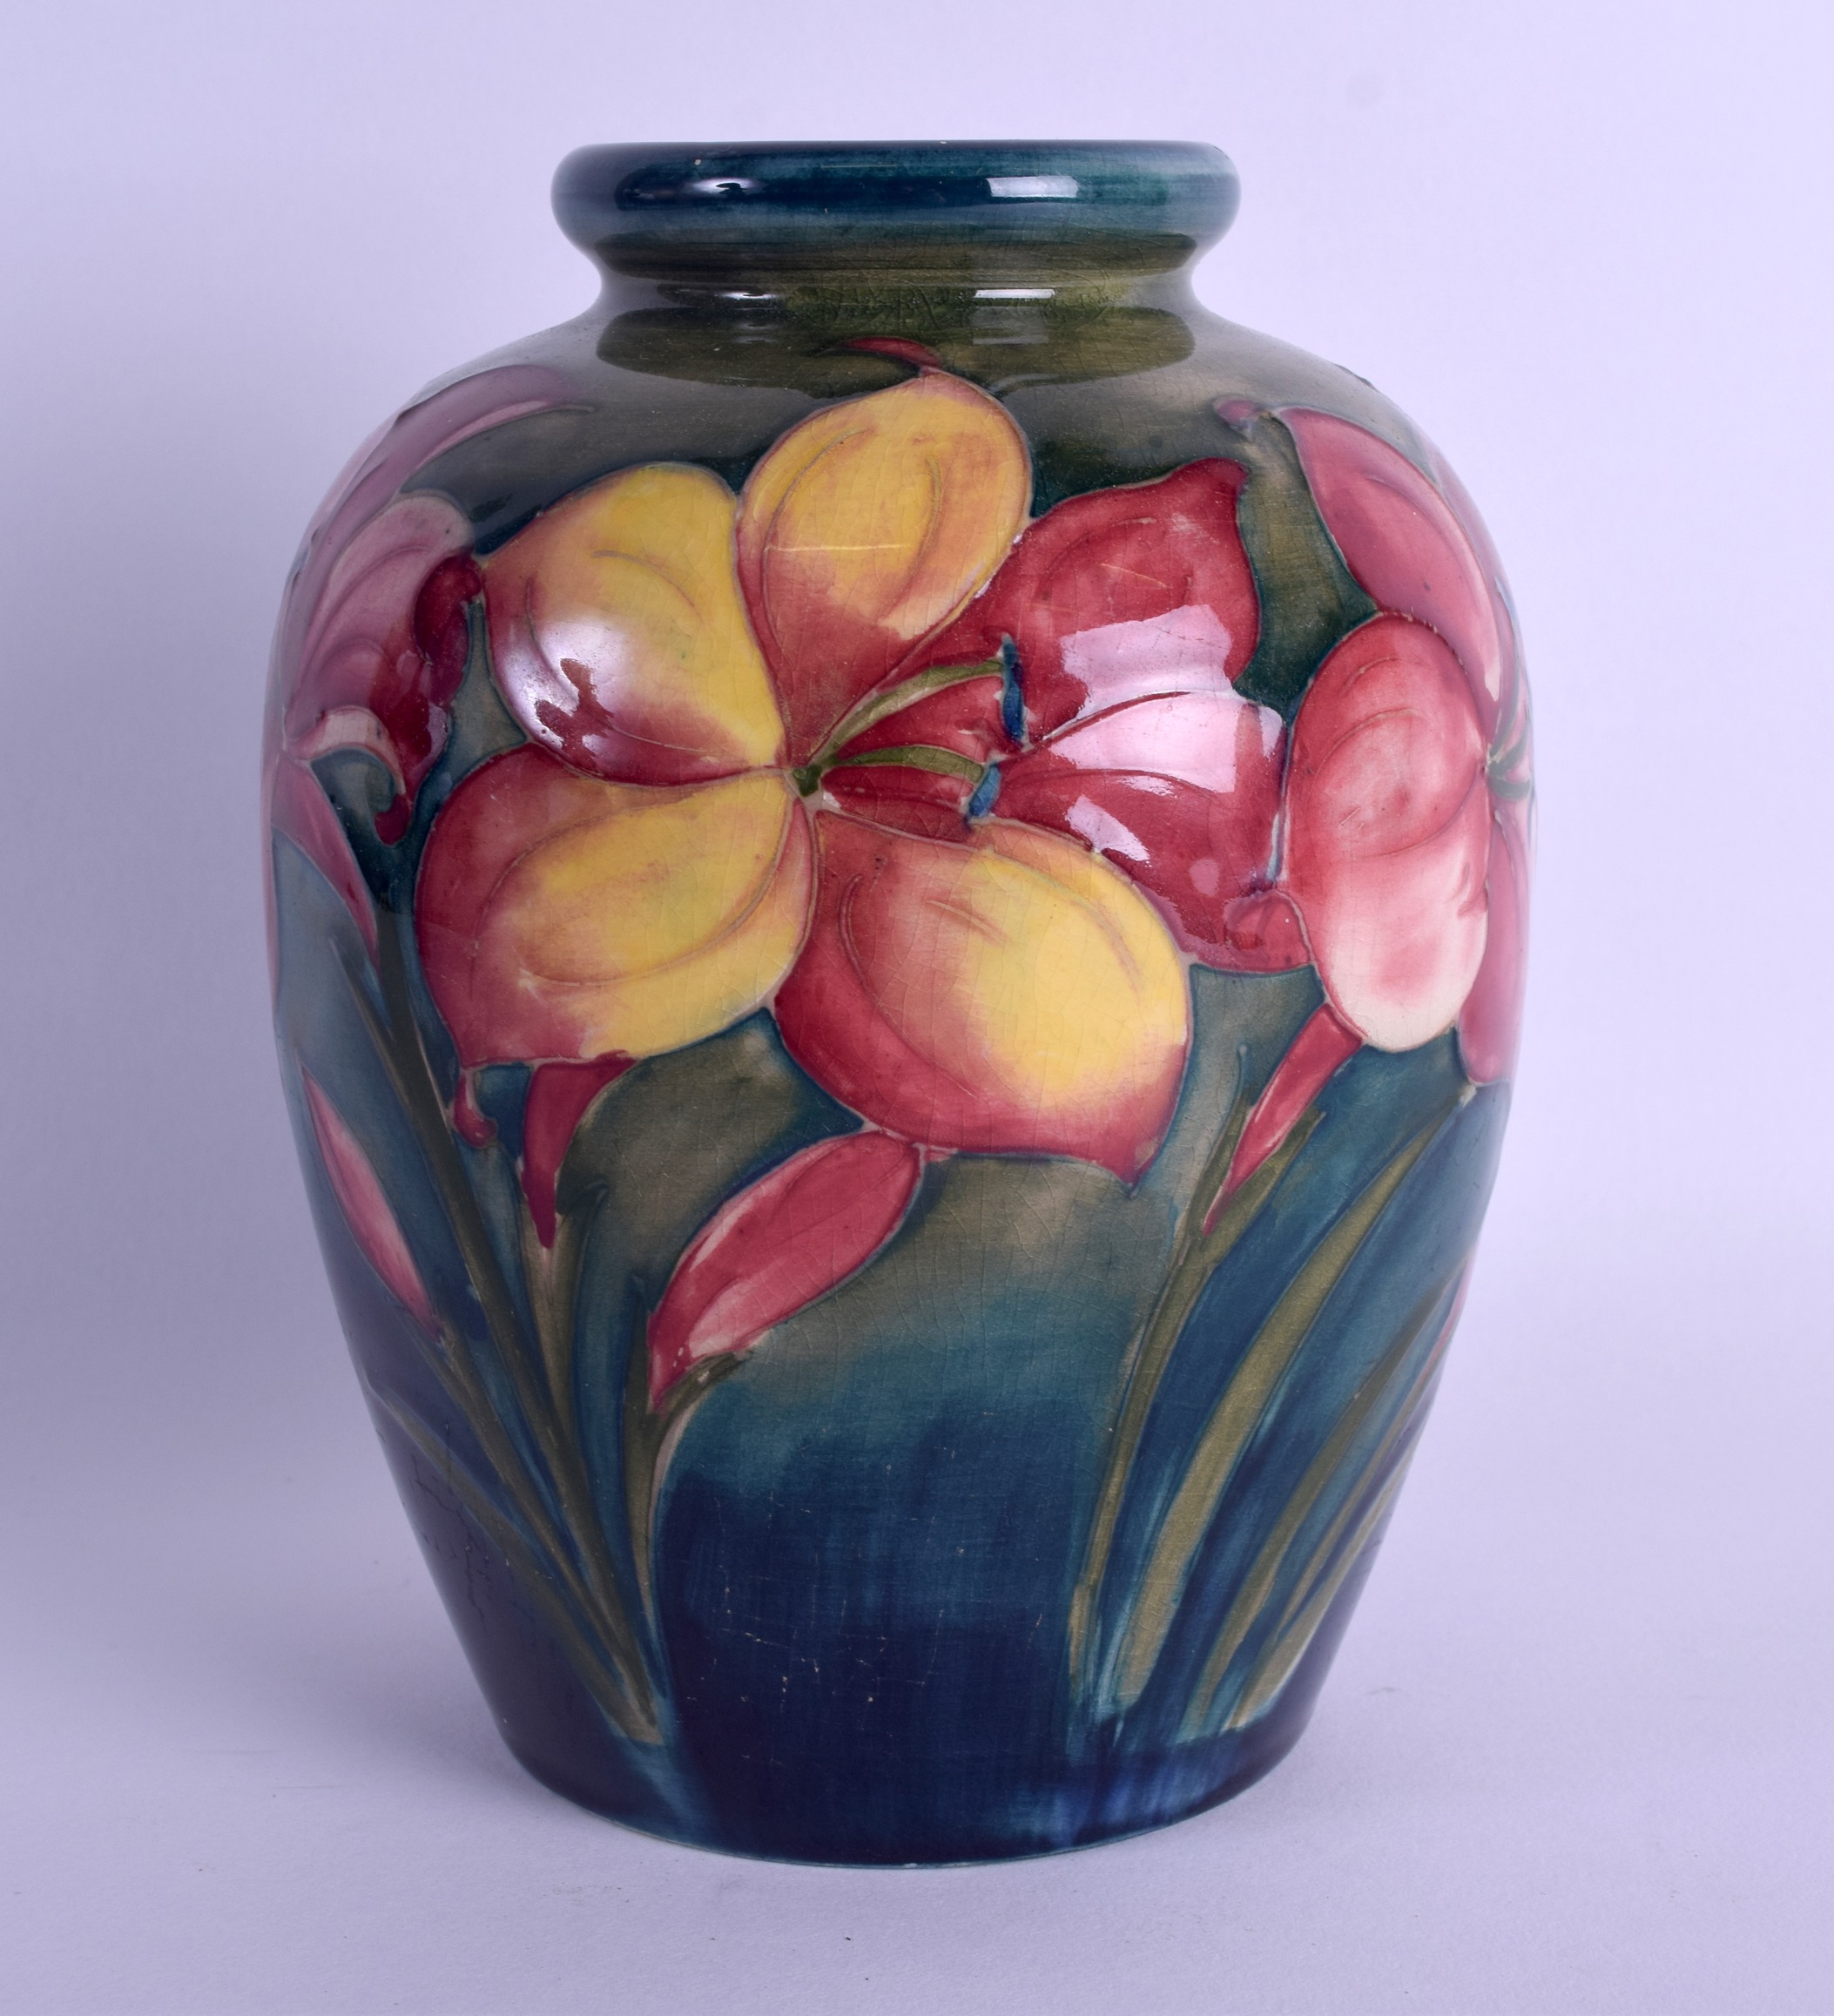 Lot 90 - A WILLIAM MOORCROFT POTTERY VASE painted with floral sprays. 15.5 cm high.